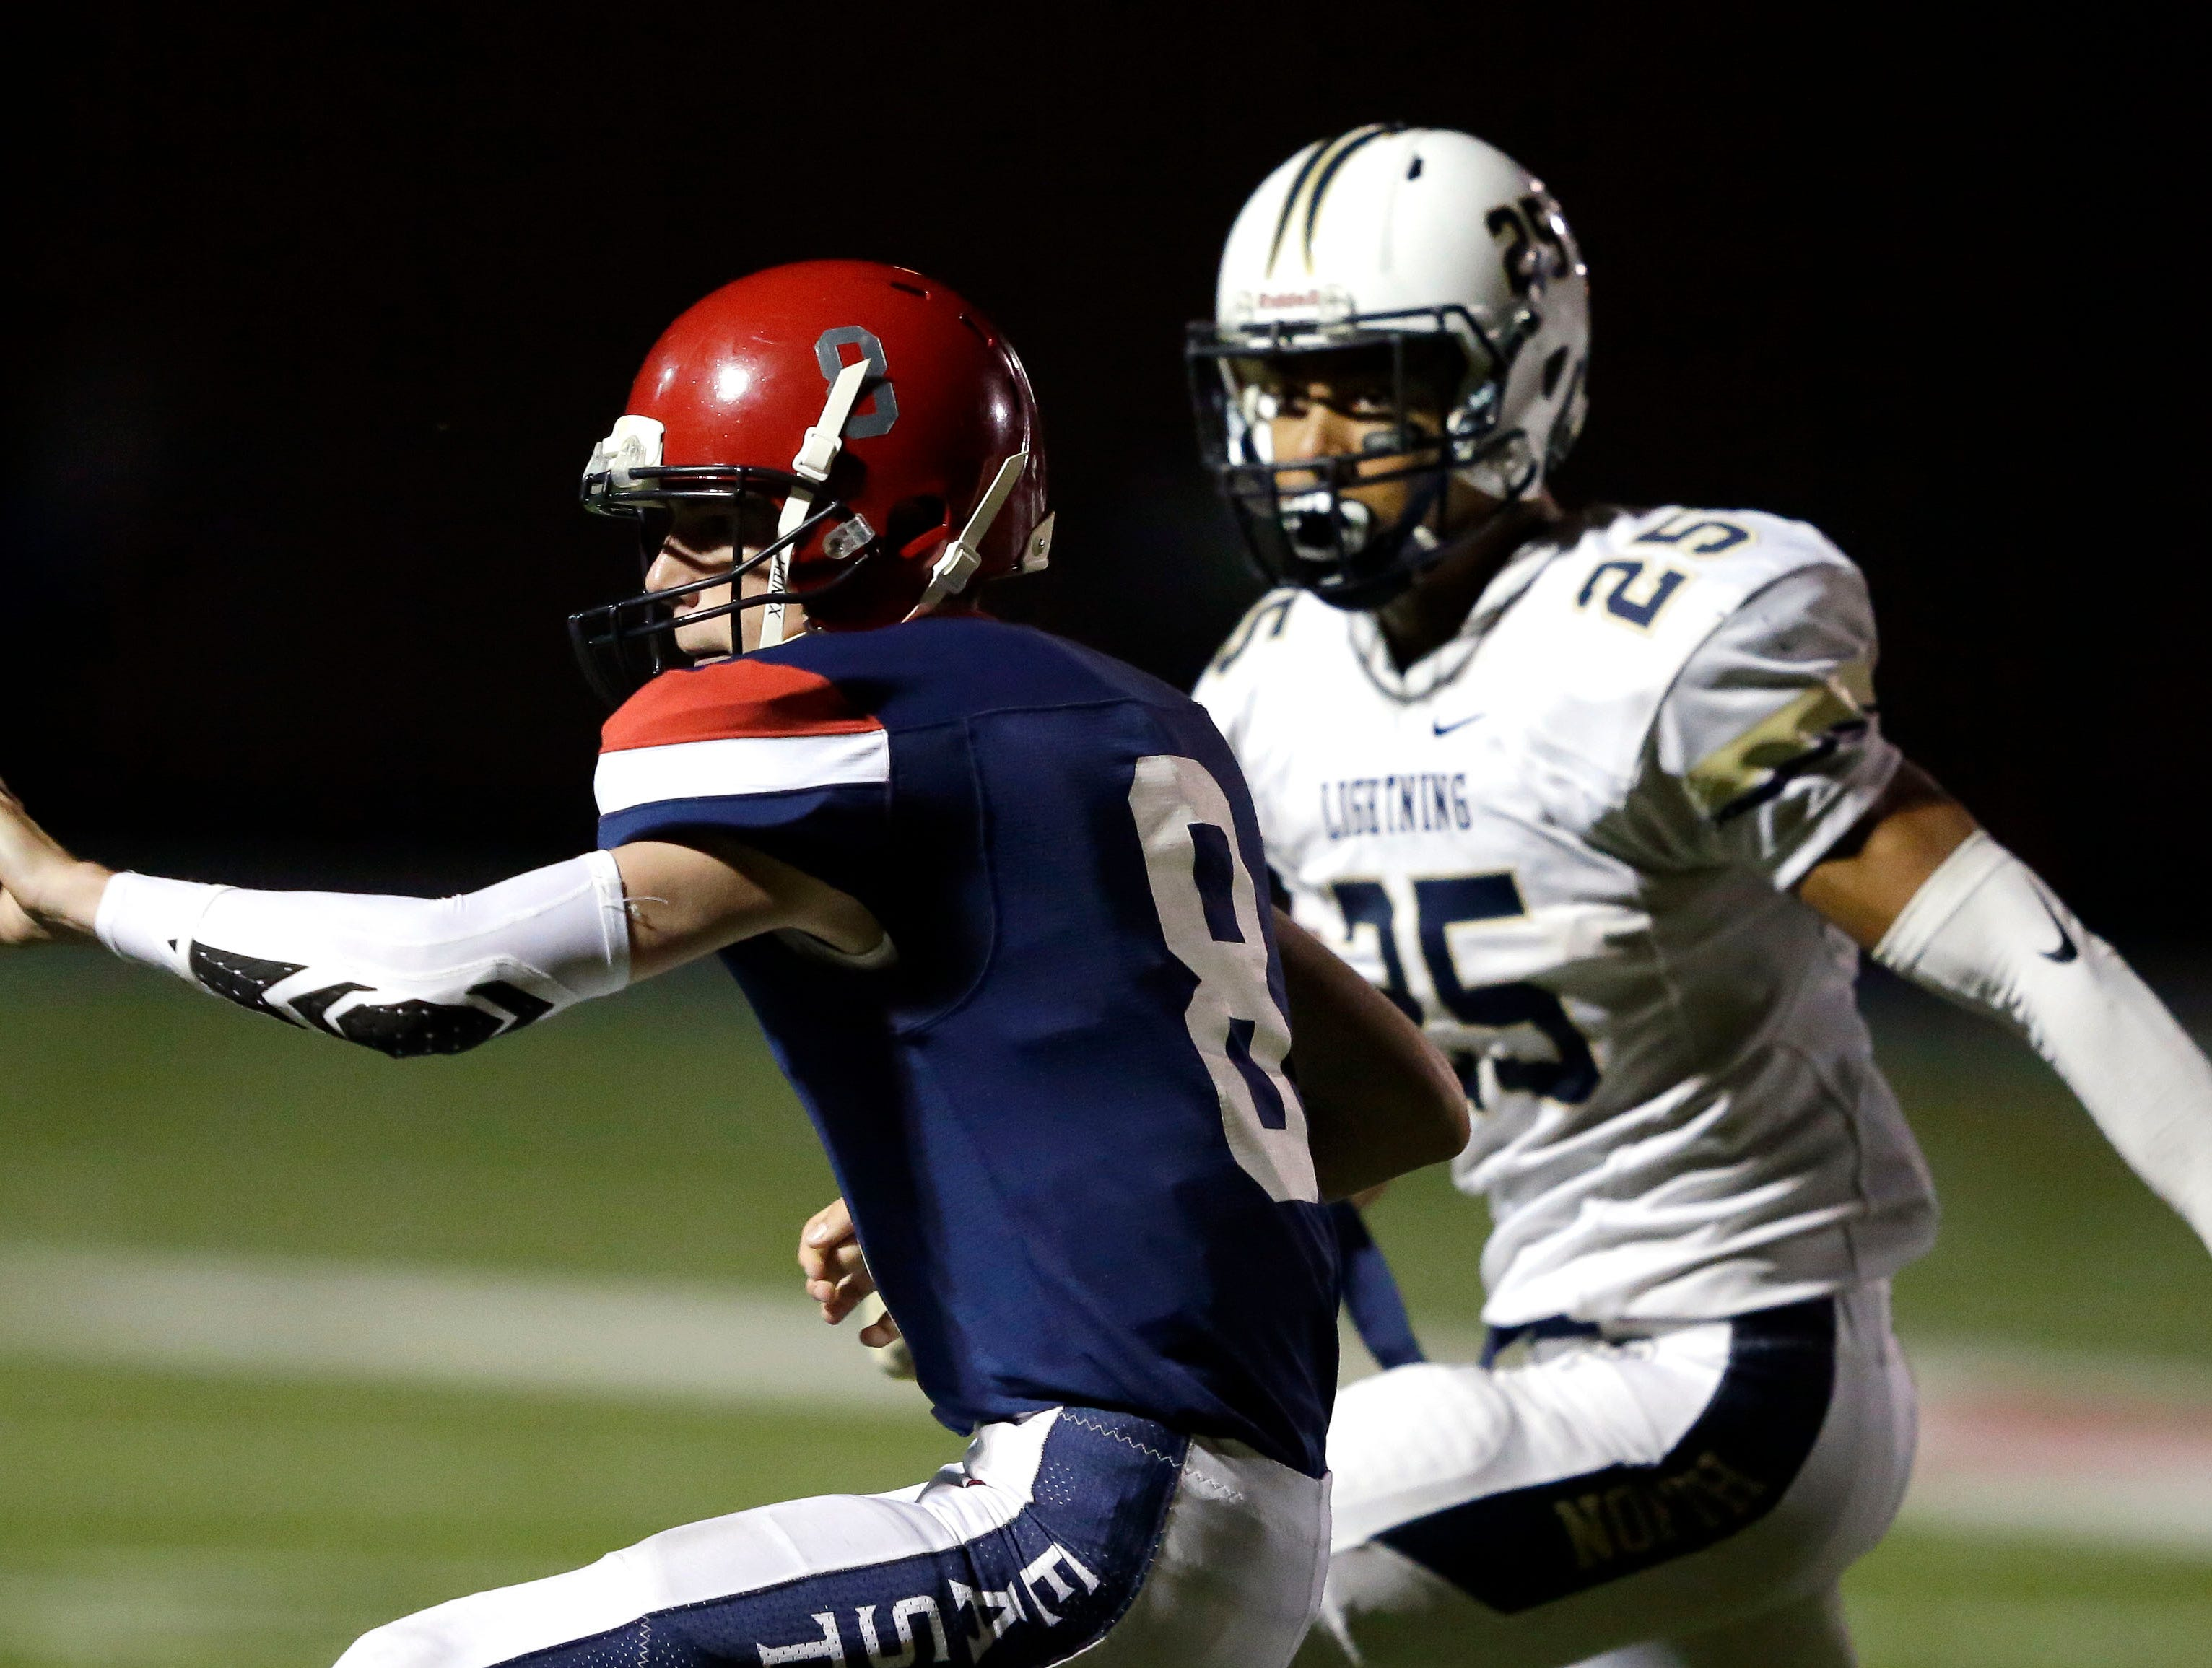 Ryan Latour of Appleton East pitches the ball as Terrell Williams of Appleton North closes in a Valley Football Association game Friday, September 14, 2018, at Appleton East High School in Appleton, Wis.Ron Page/USA TODAY NETWORK-Wisconsin